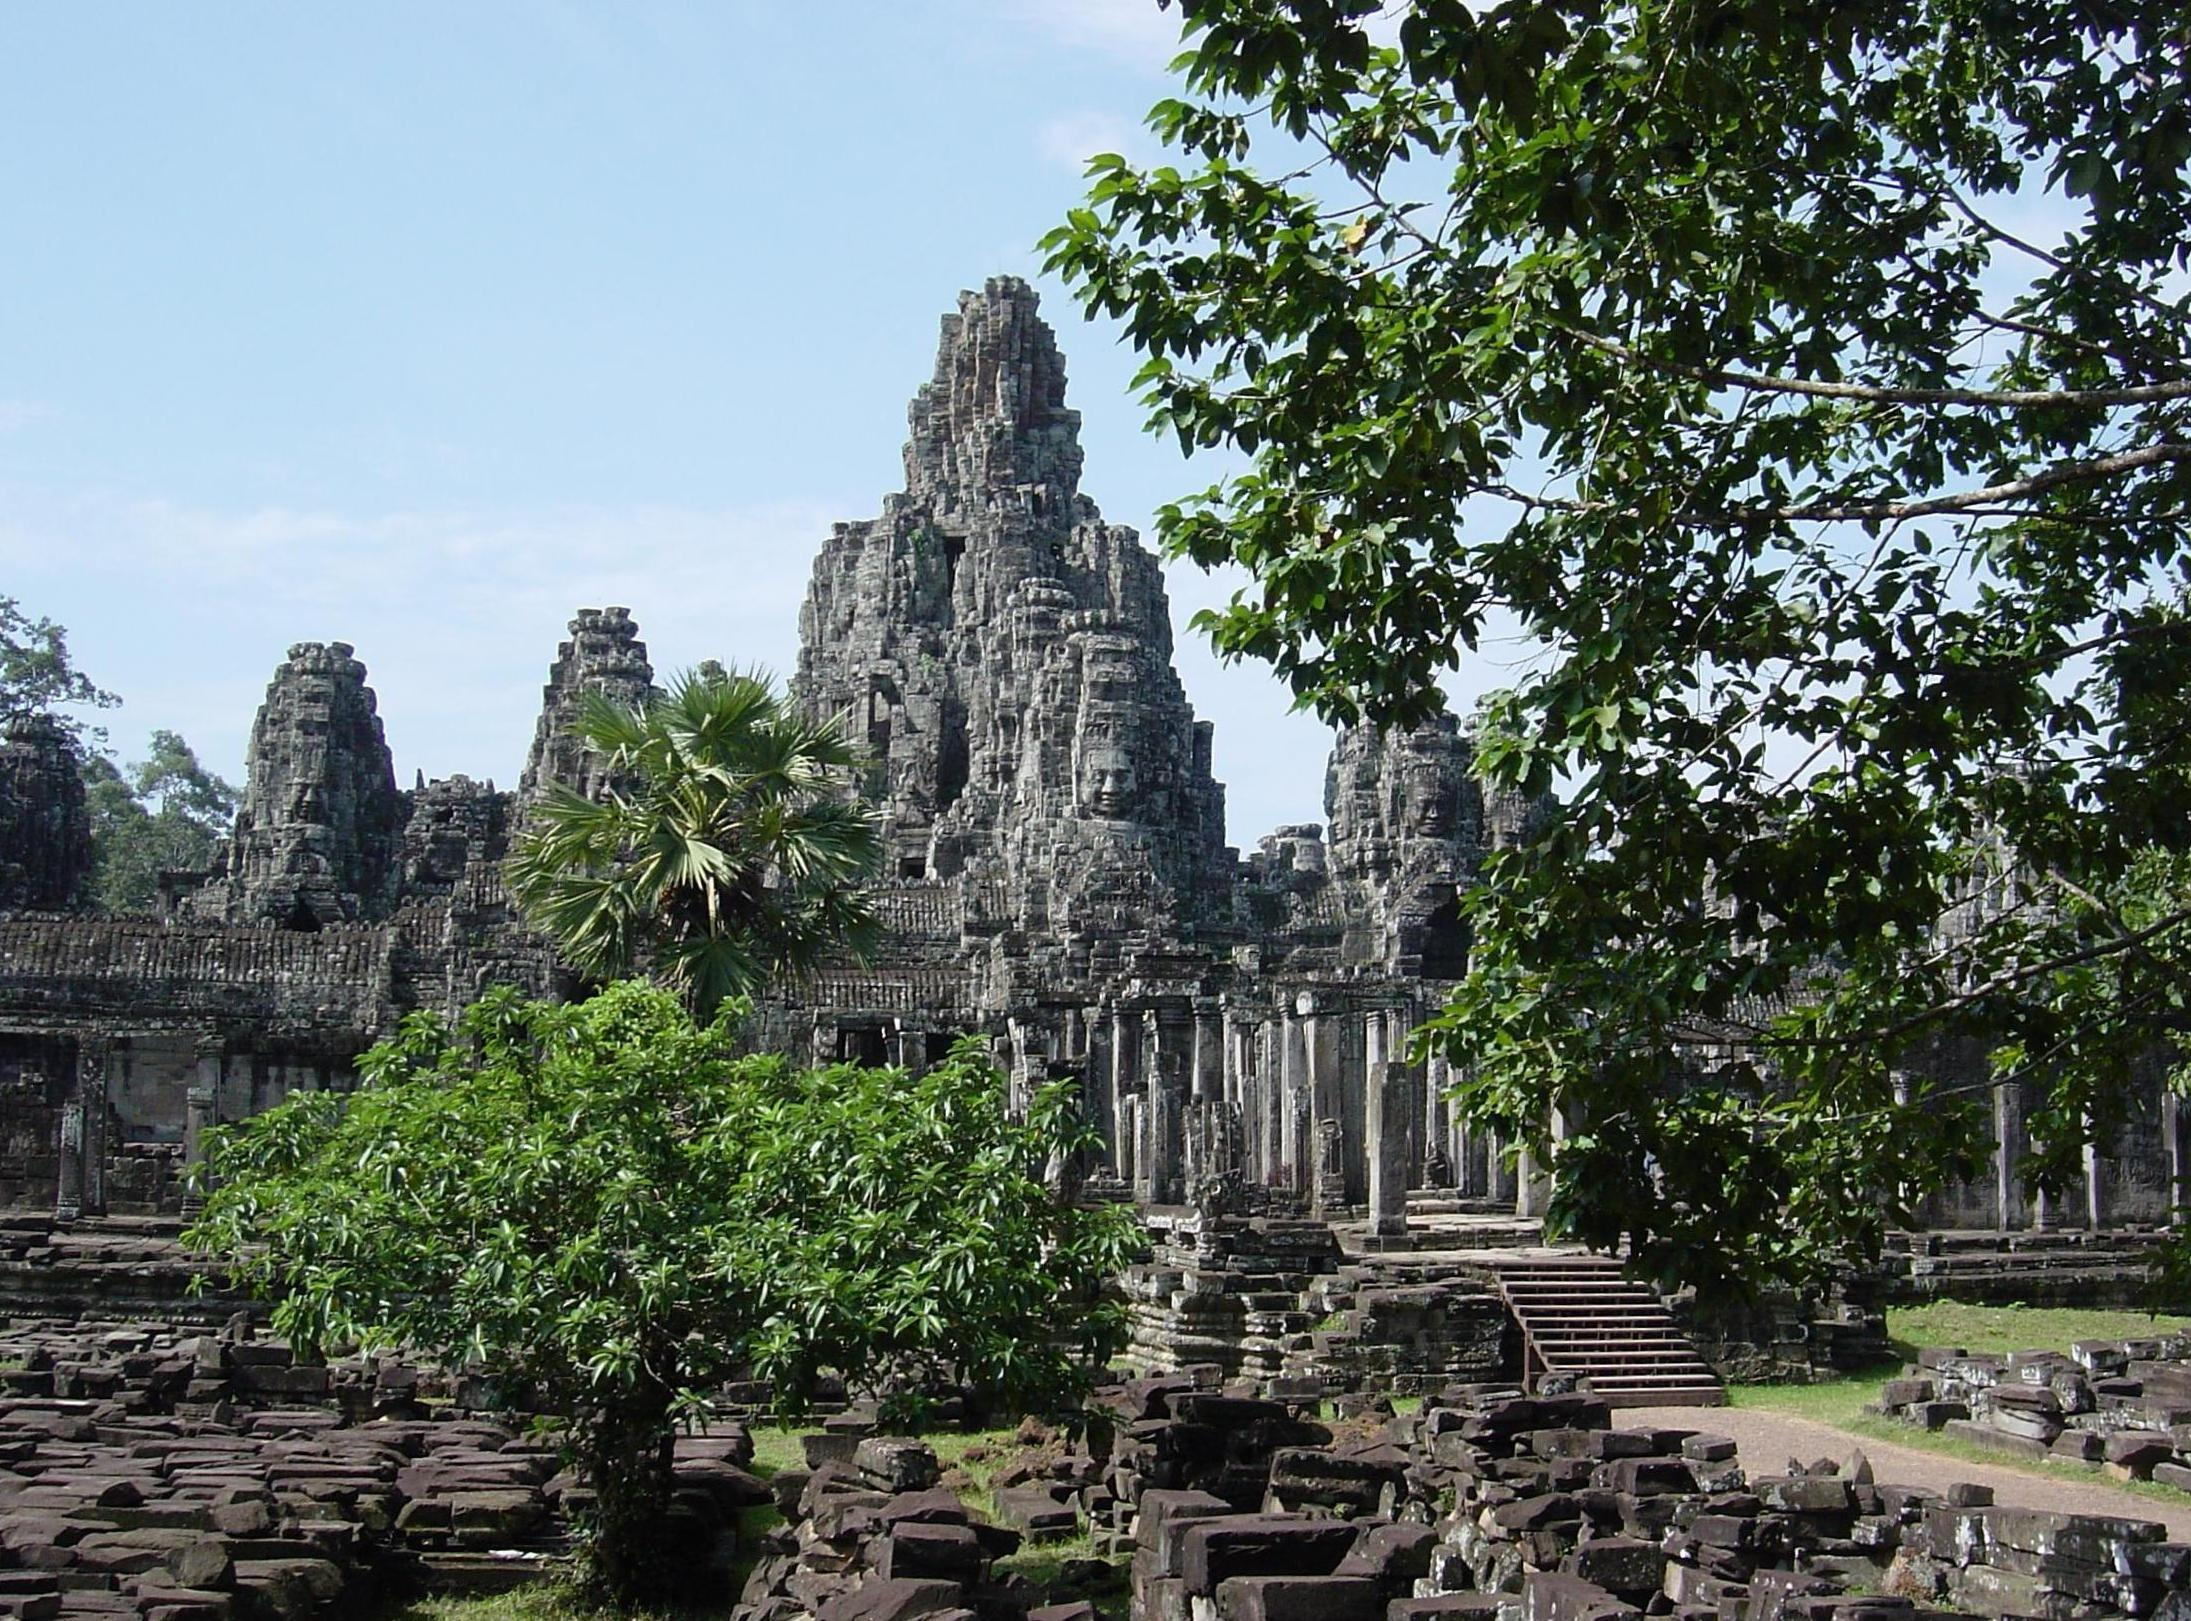 http://upload.wikimedia.org/wikipedia/commons/5/5f/Bayon-temple.JPG